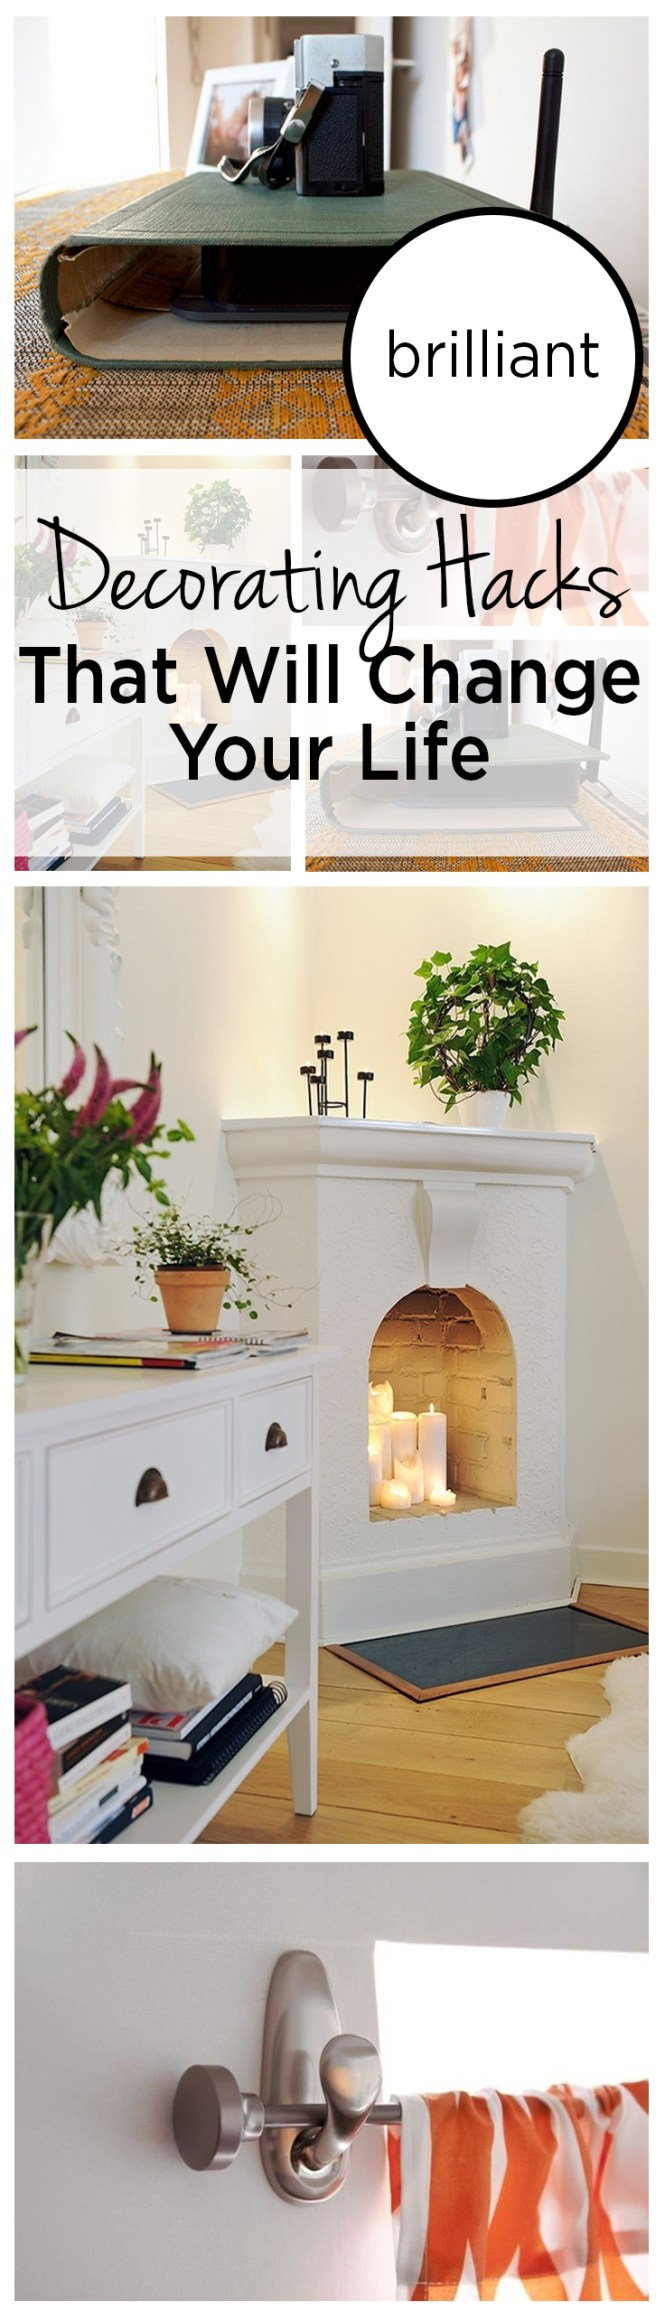 23 Clever Kmart Hacks That 39 Ll Take Your Decor To The Next Level home. Hacks That39ll Get Your   louisvuittonukonlinestore com